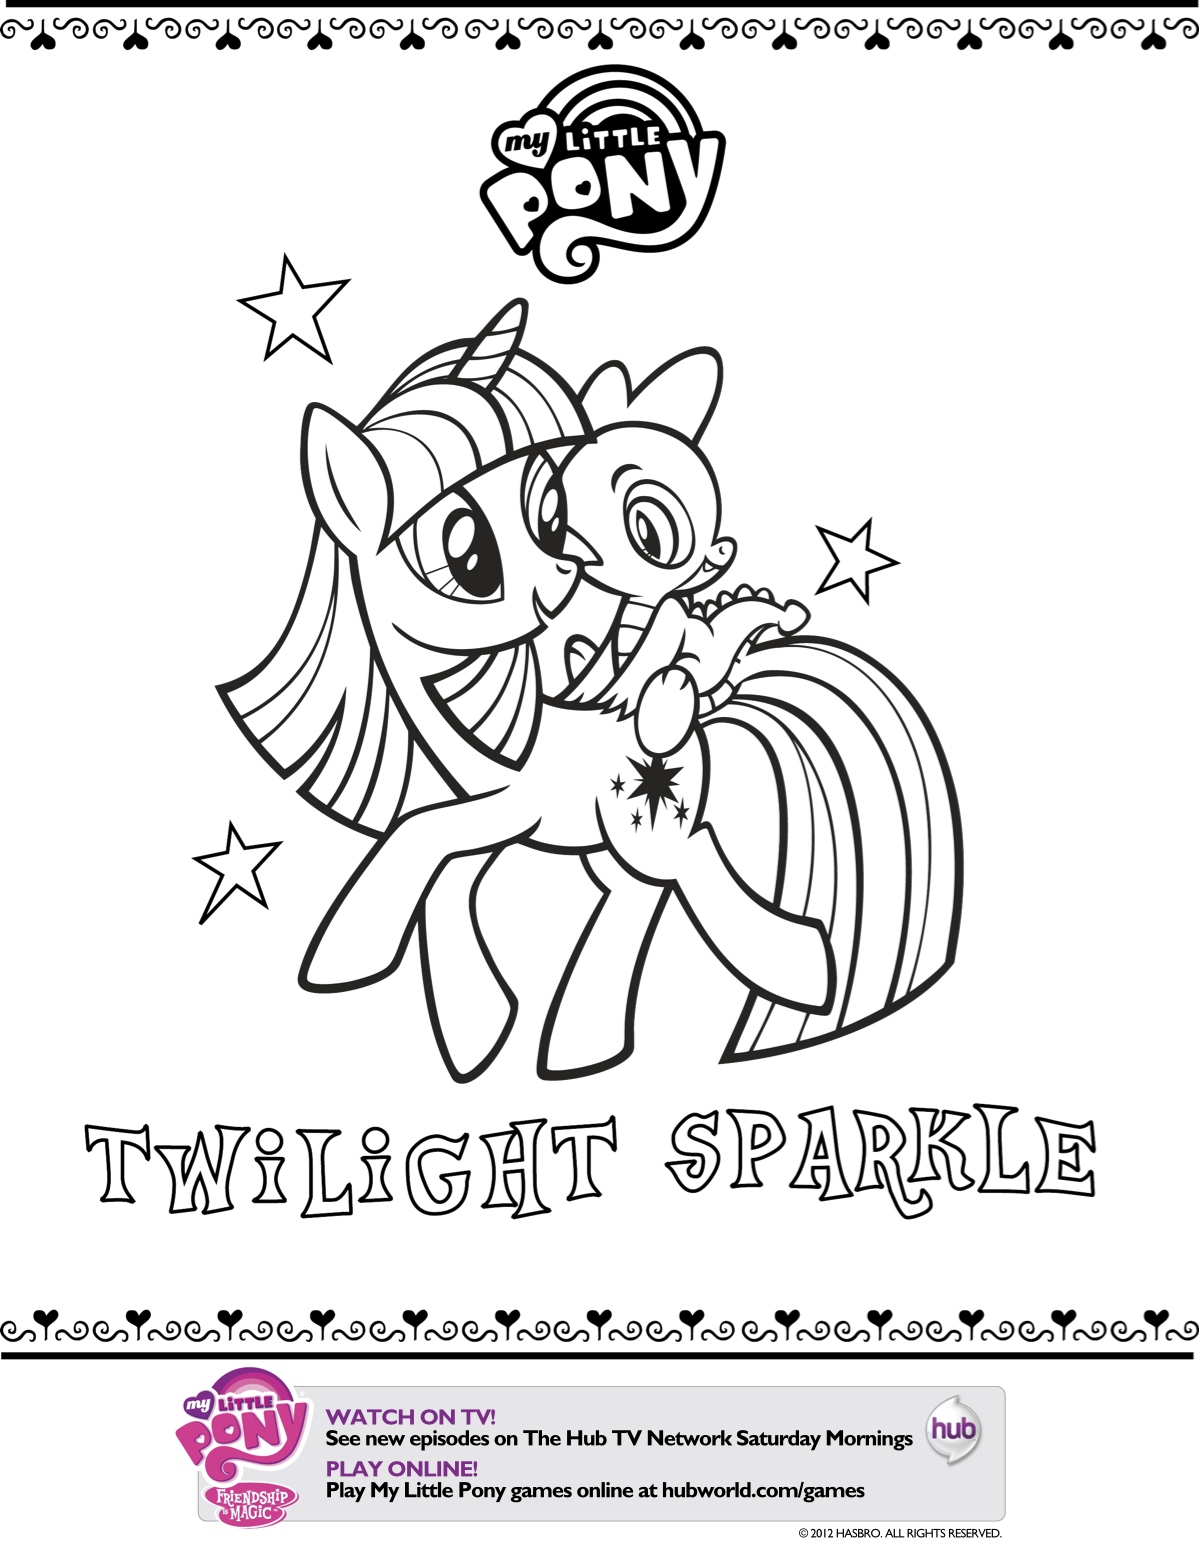 My Little Pony Twilight Sparkle Printable Coloring Page